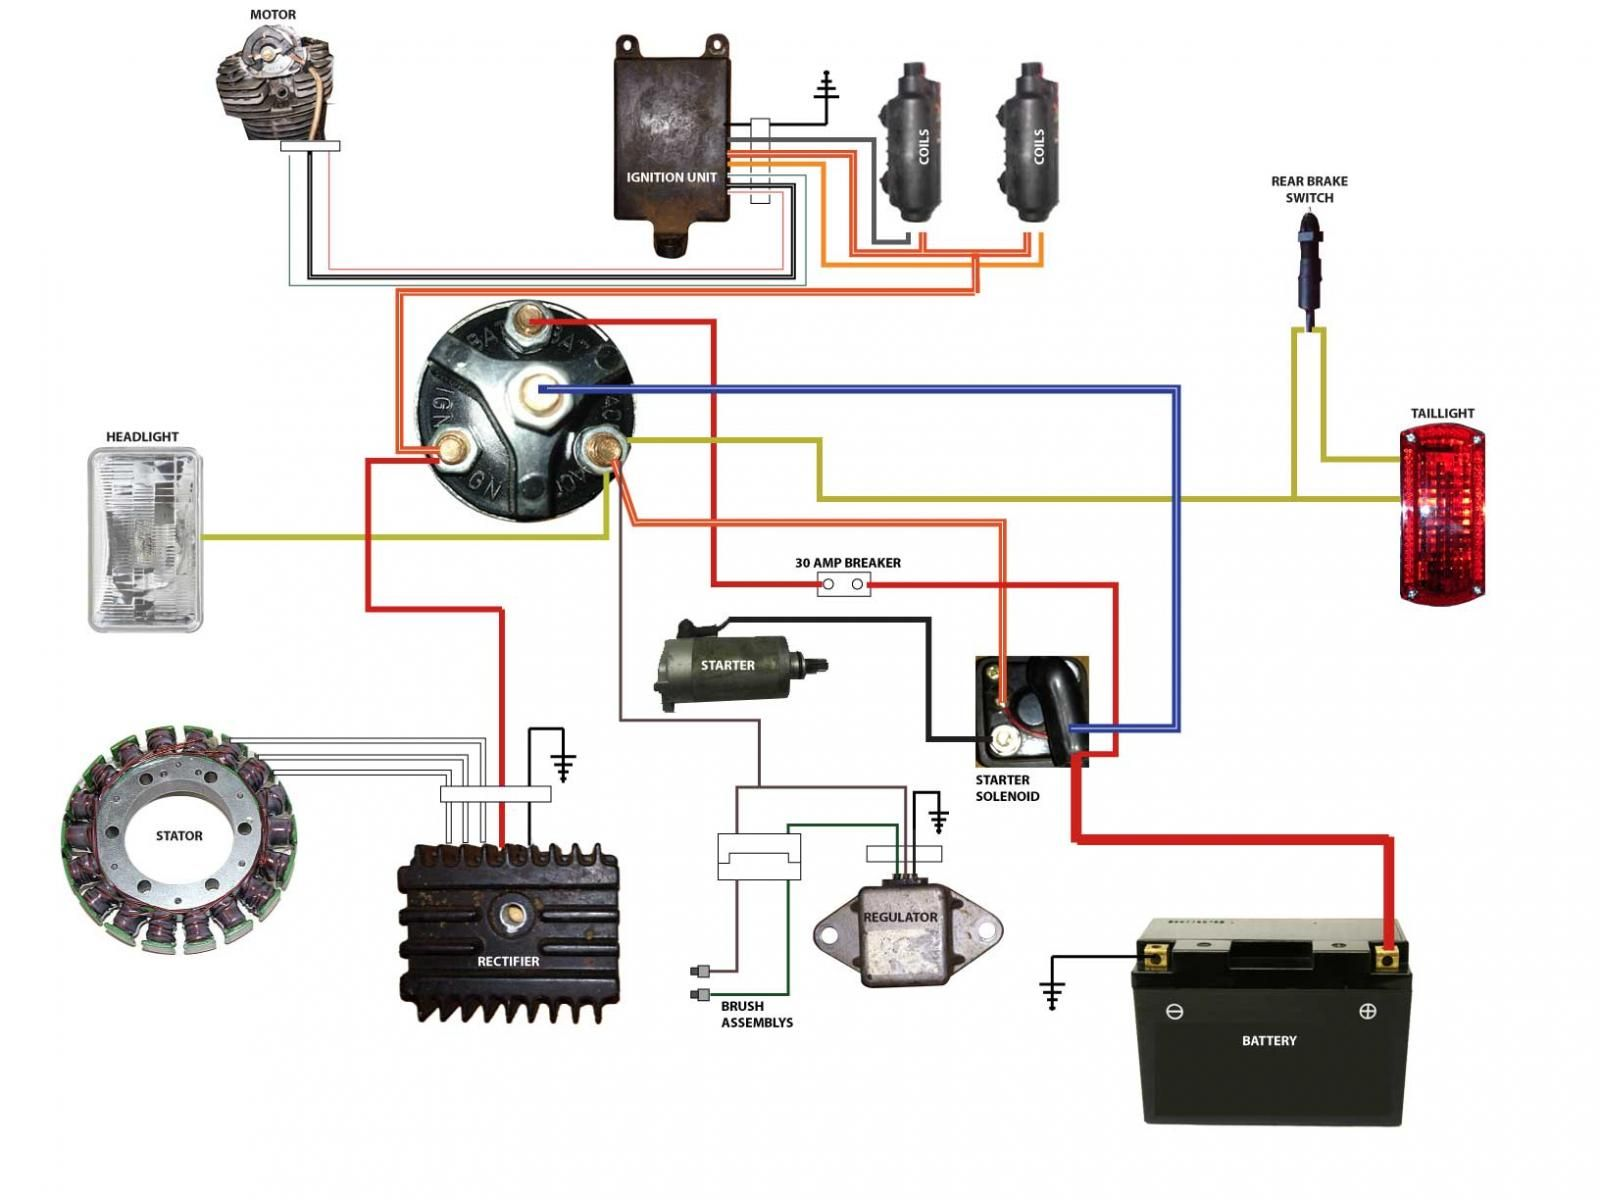 Simple Harley Wiring Diagram For Motorcycles 3 Phase Motor Dol Starter Simplified Xs400 Cafe Projects To Try